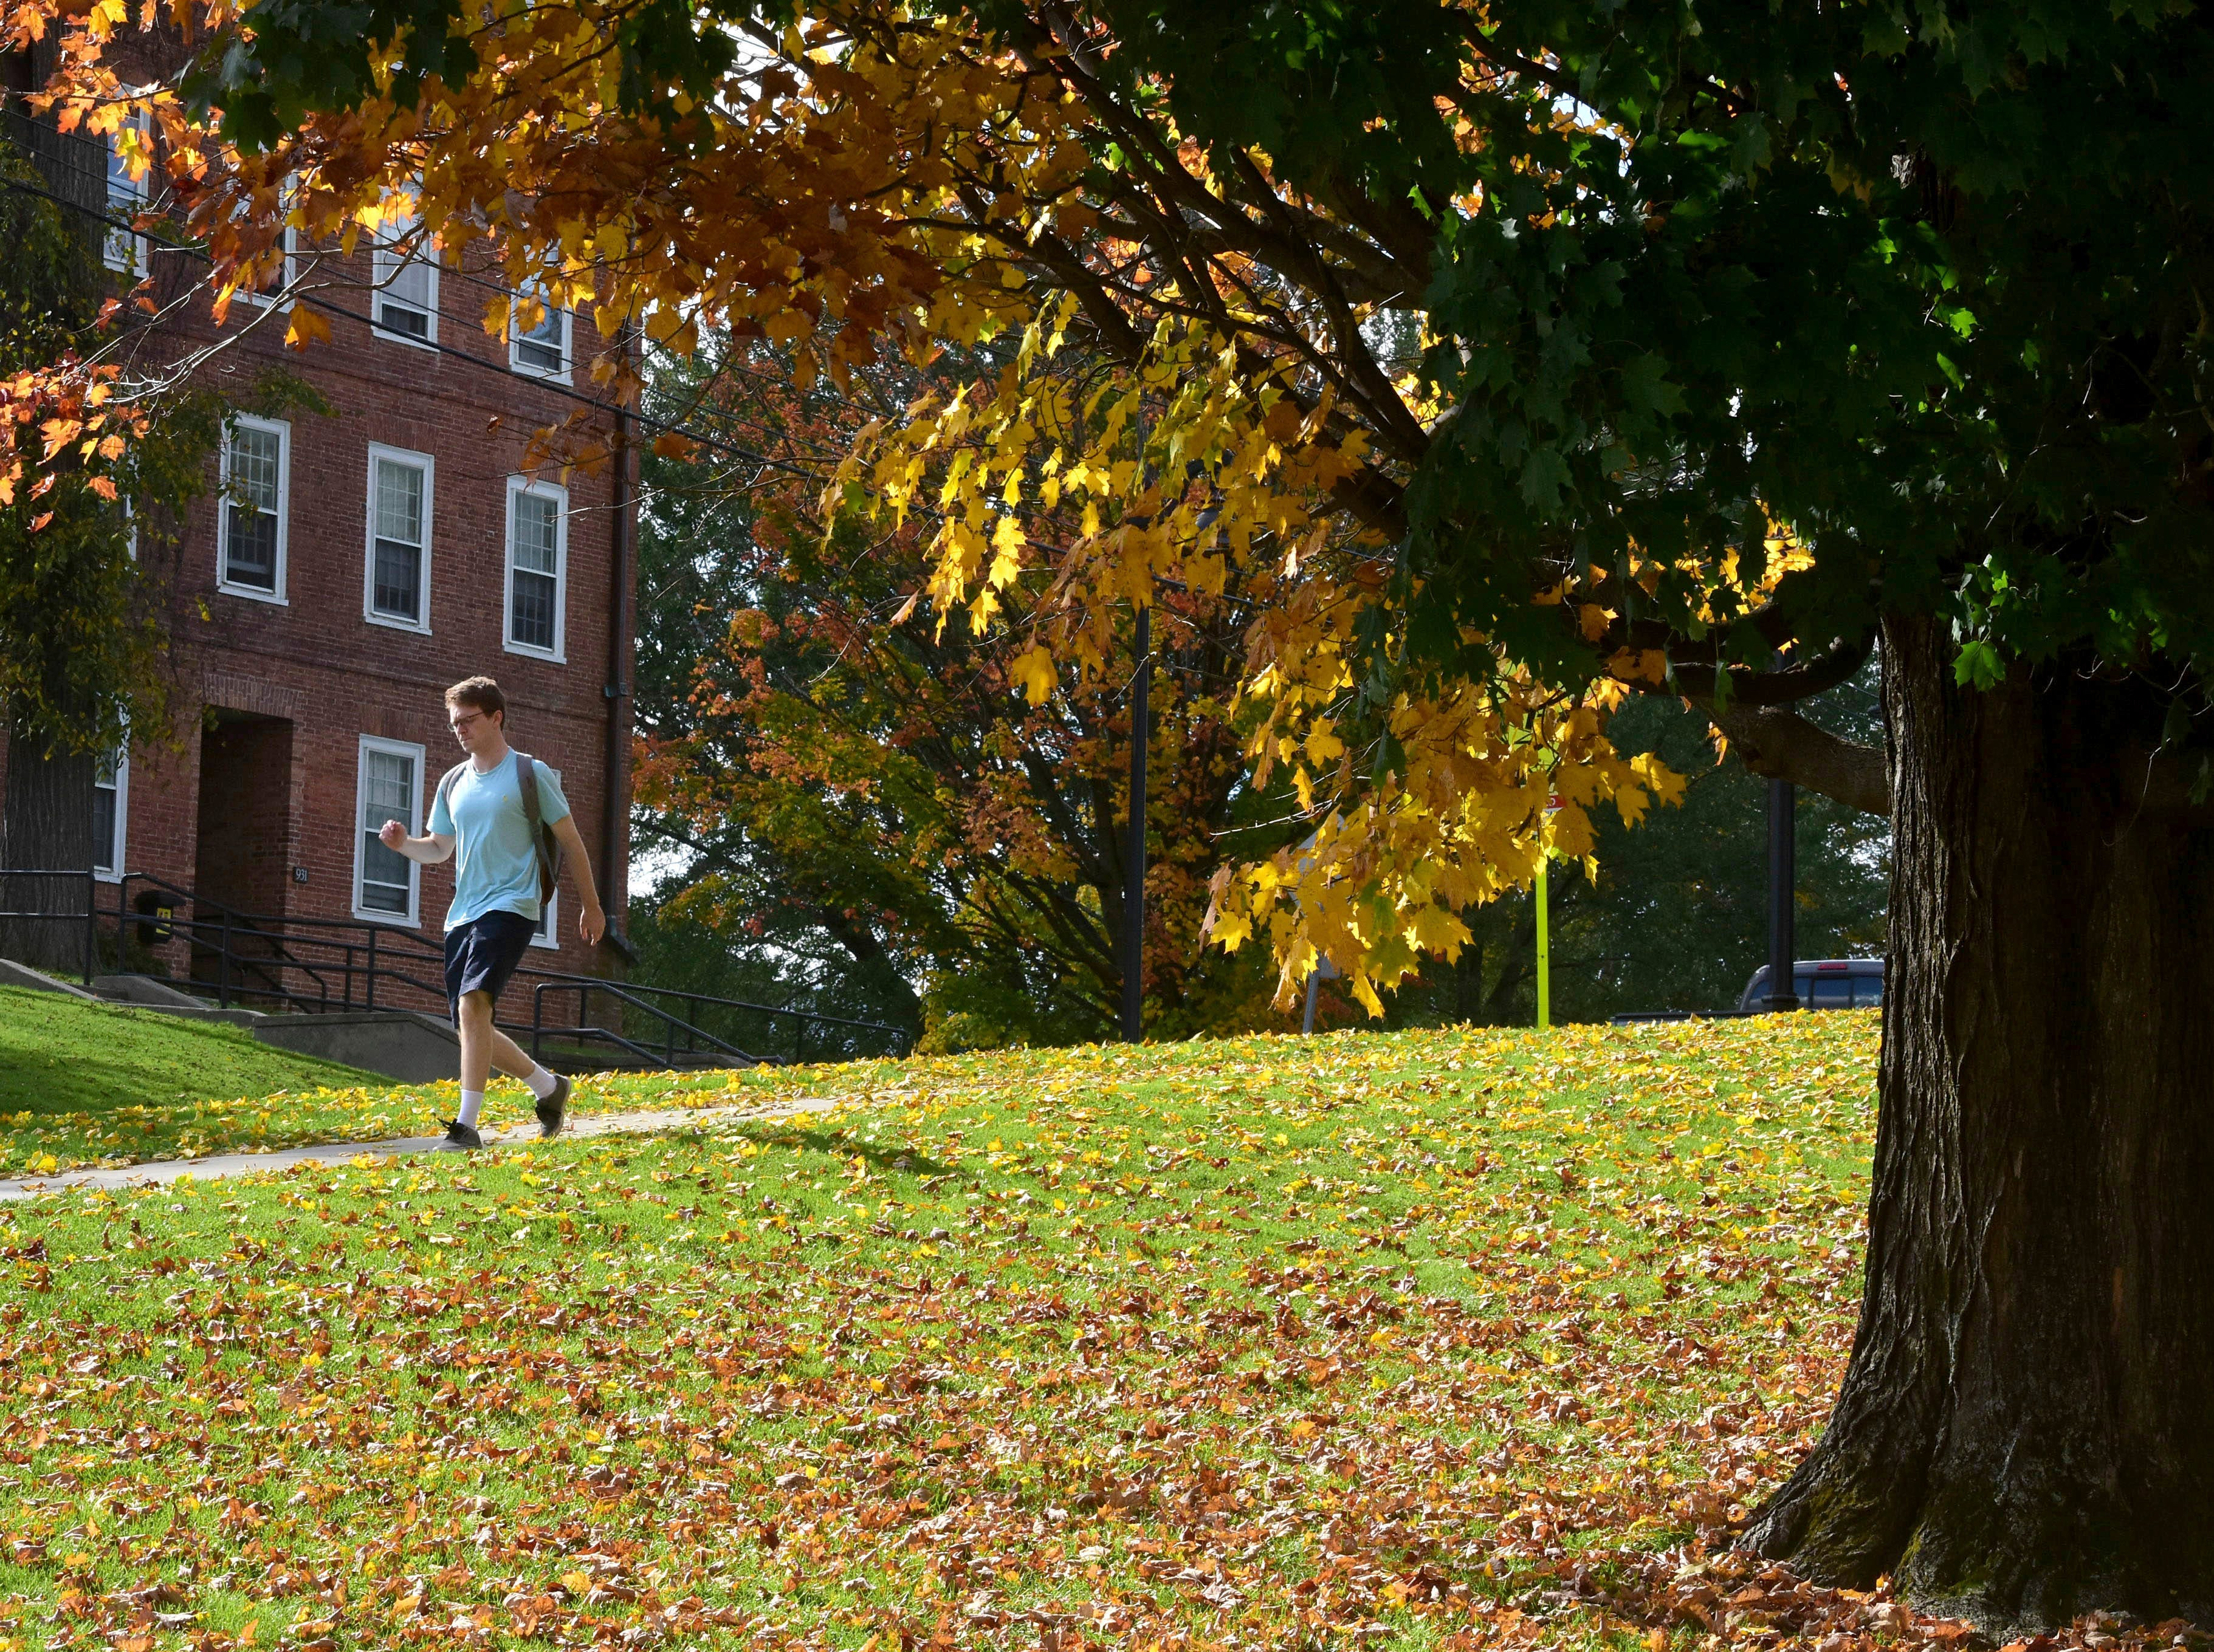 As temperatures reached into the low 80's many Williams College students wore shorts as they walked across a colorful campus ripe with foliage and a blanket of autumn leaves on Wednesday, Oct. 10, 2018 in Williamstown, Mass. in the Berkshires.